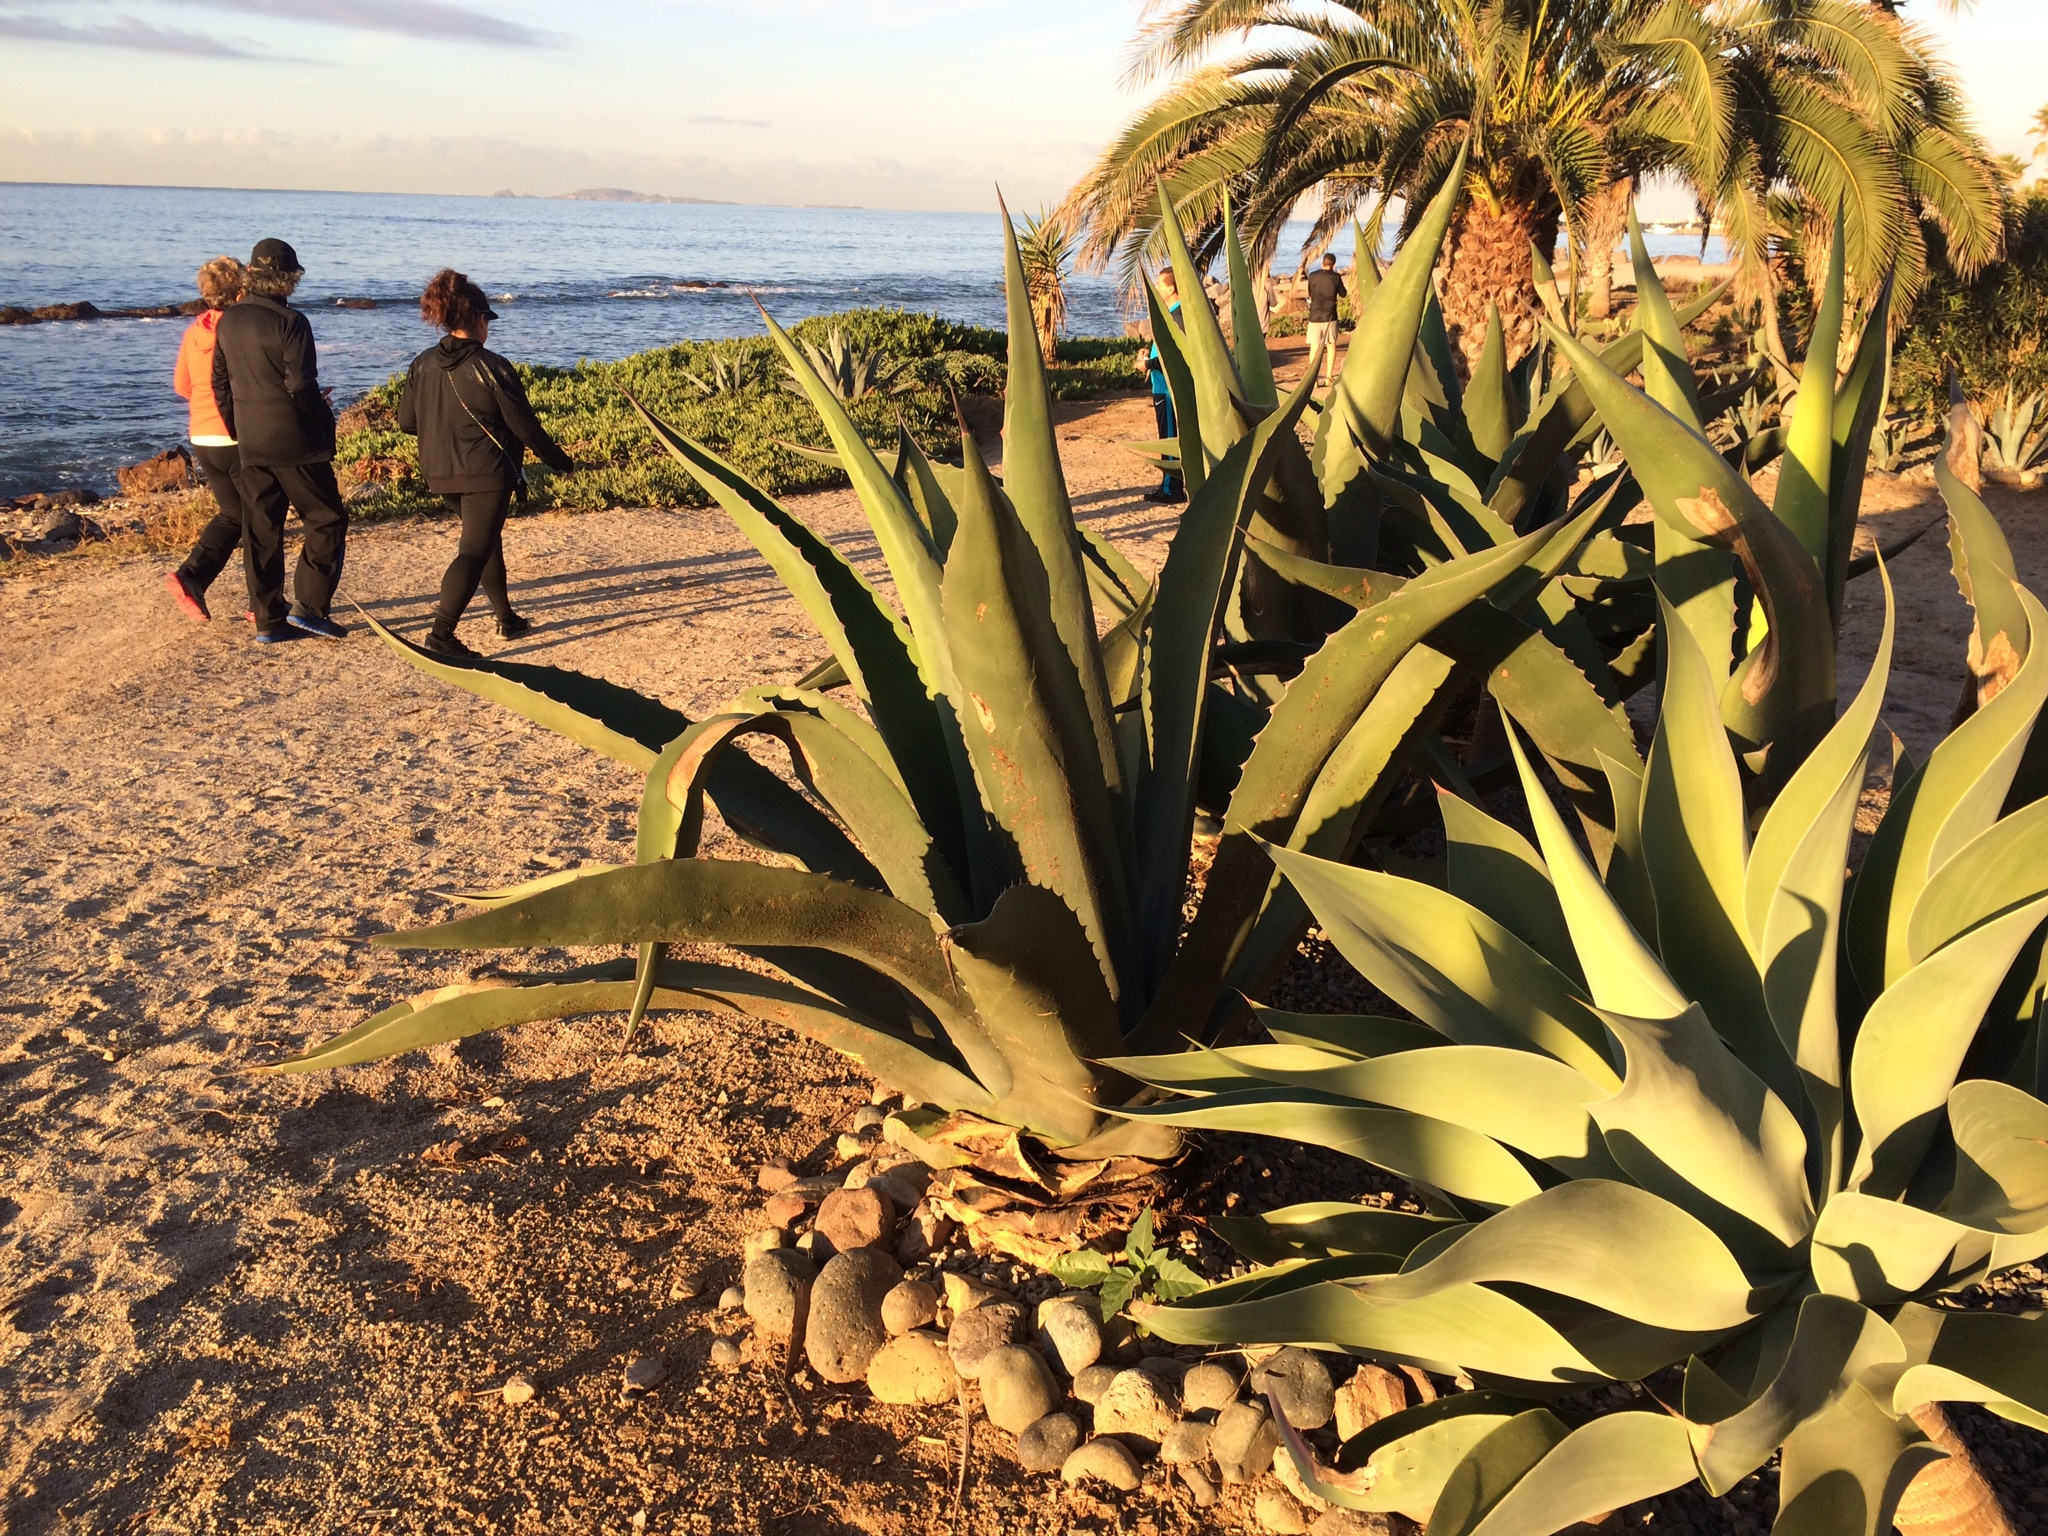 Scenic and serene morning walks along the water are part of the new wellness program at Hotel Coral near Ensenada, which will be offered several times in 2016. Photo by E'Louise Ondash